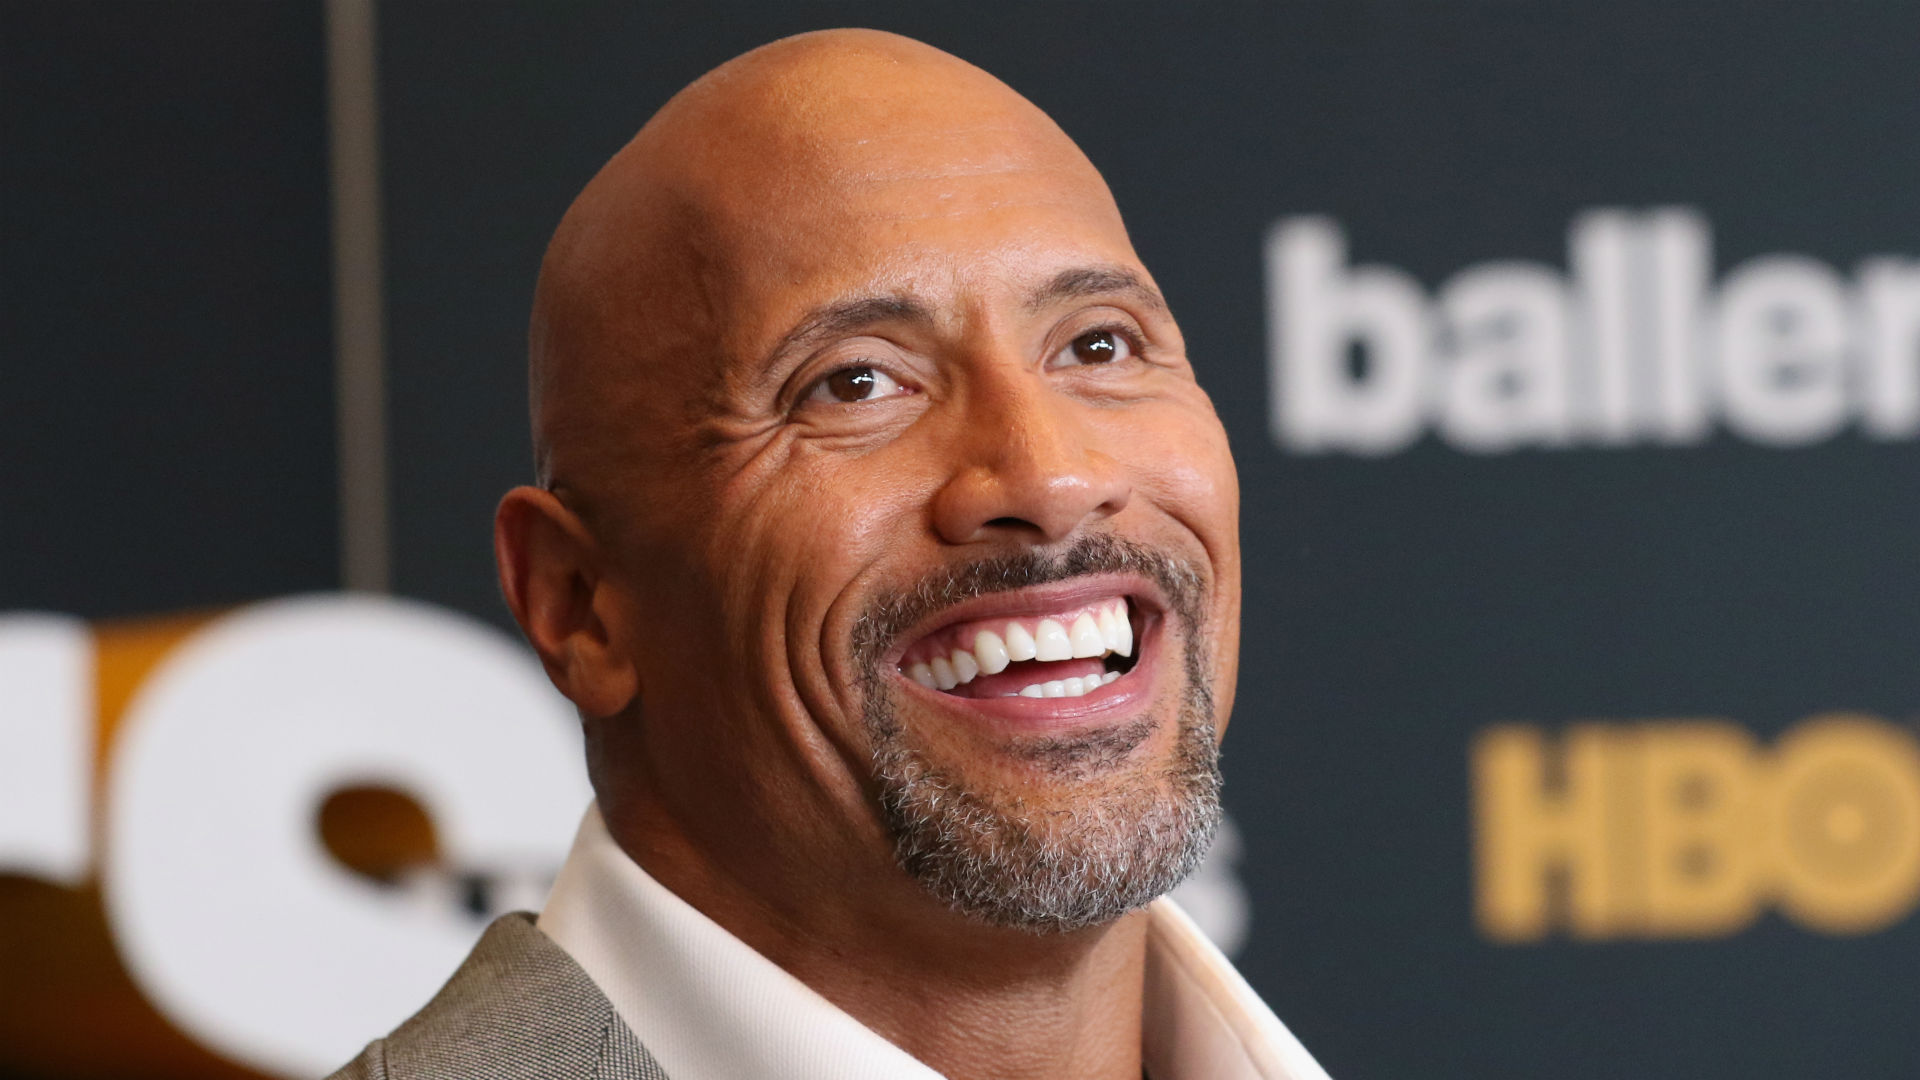 Dwayne 'The Rock' Johnson hilariously breaks down his WWE debut